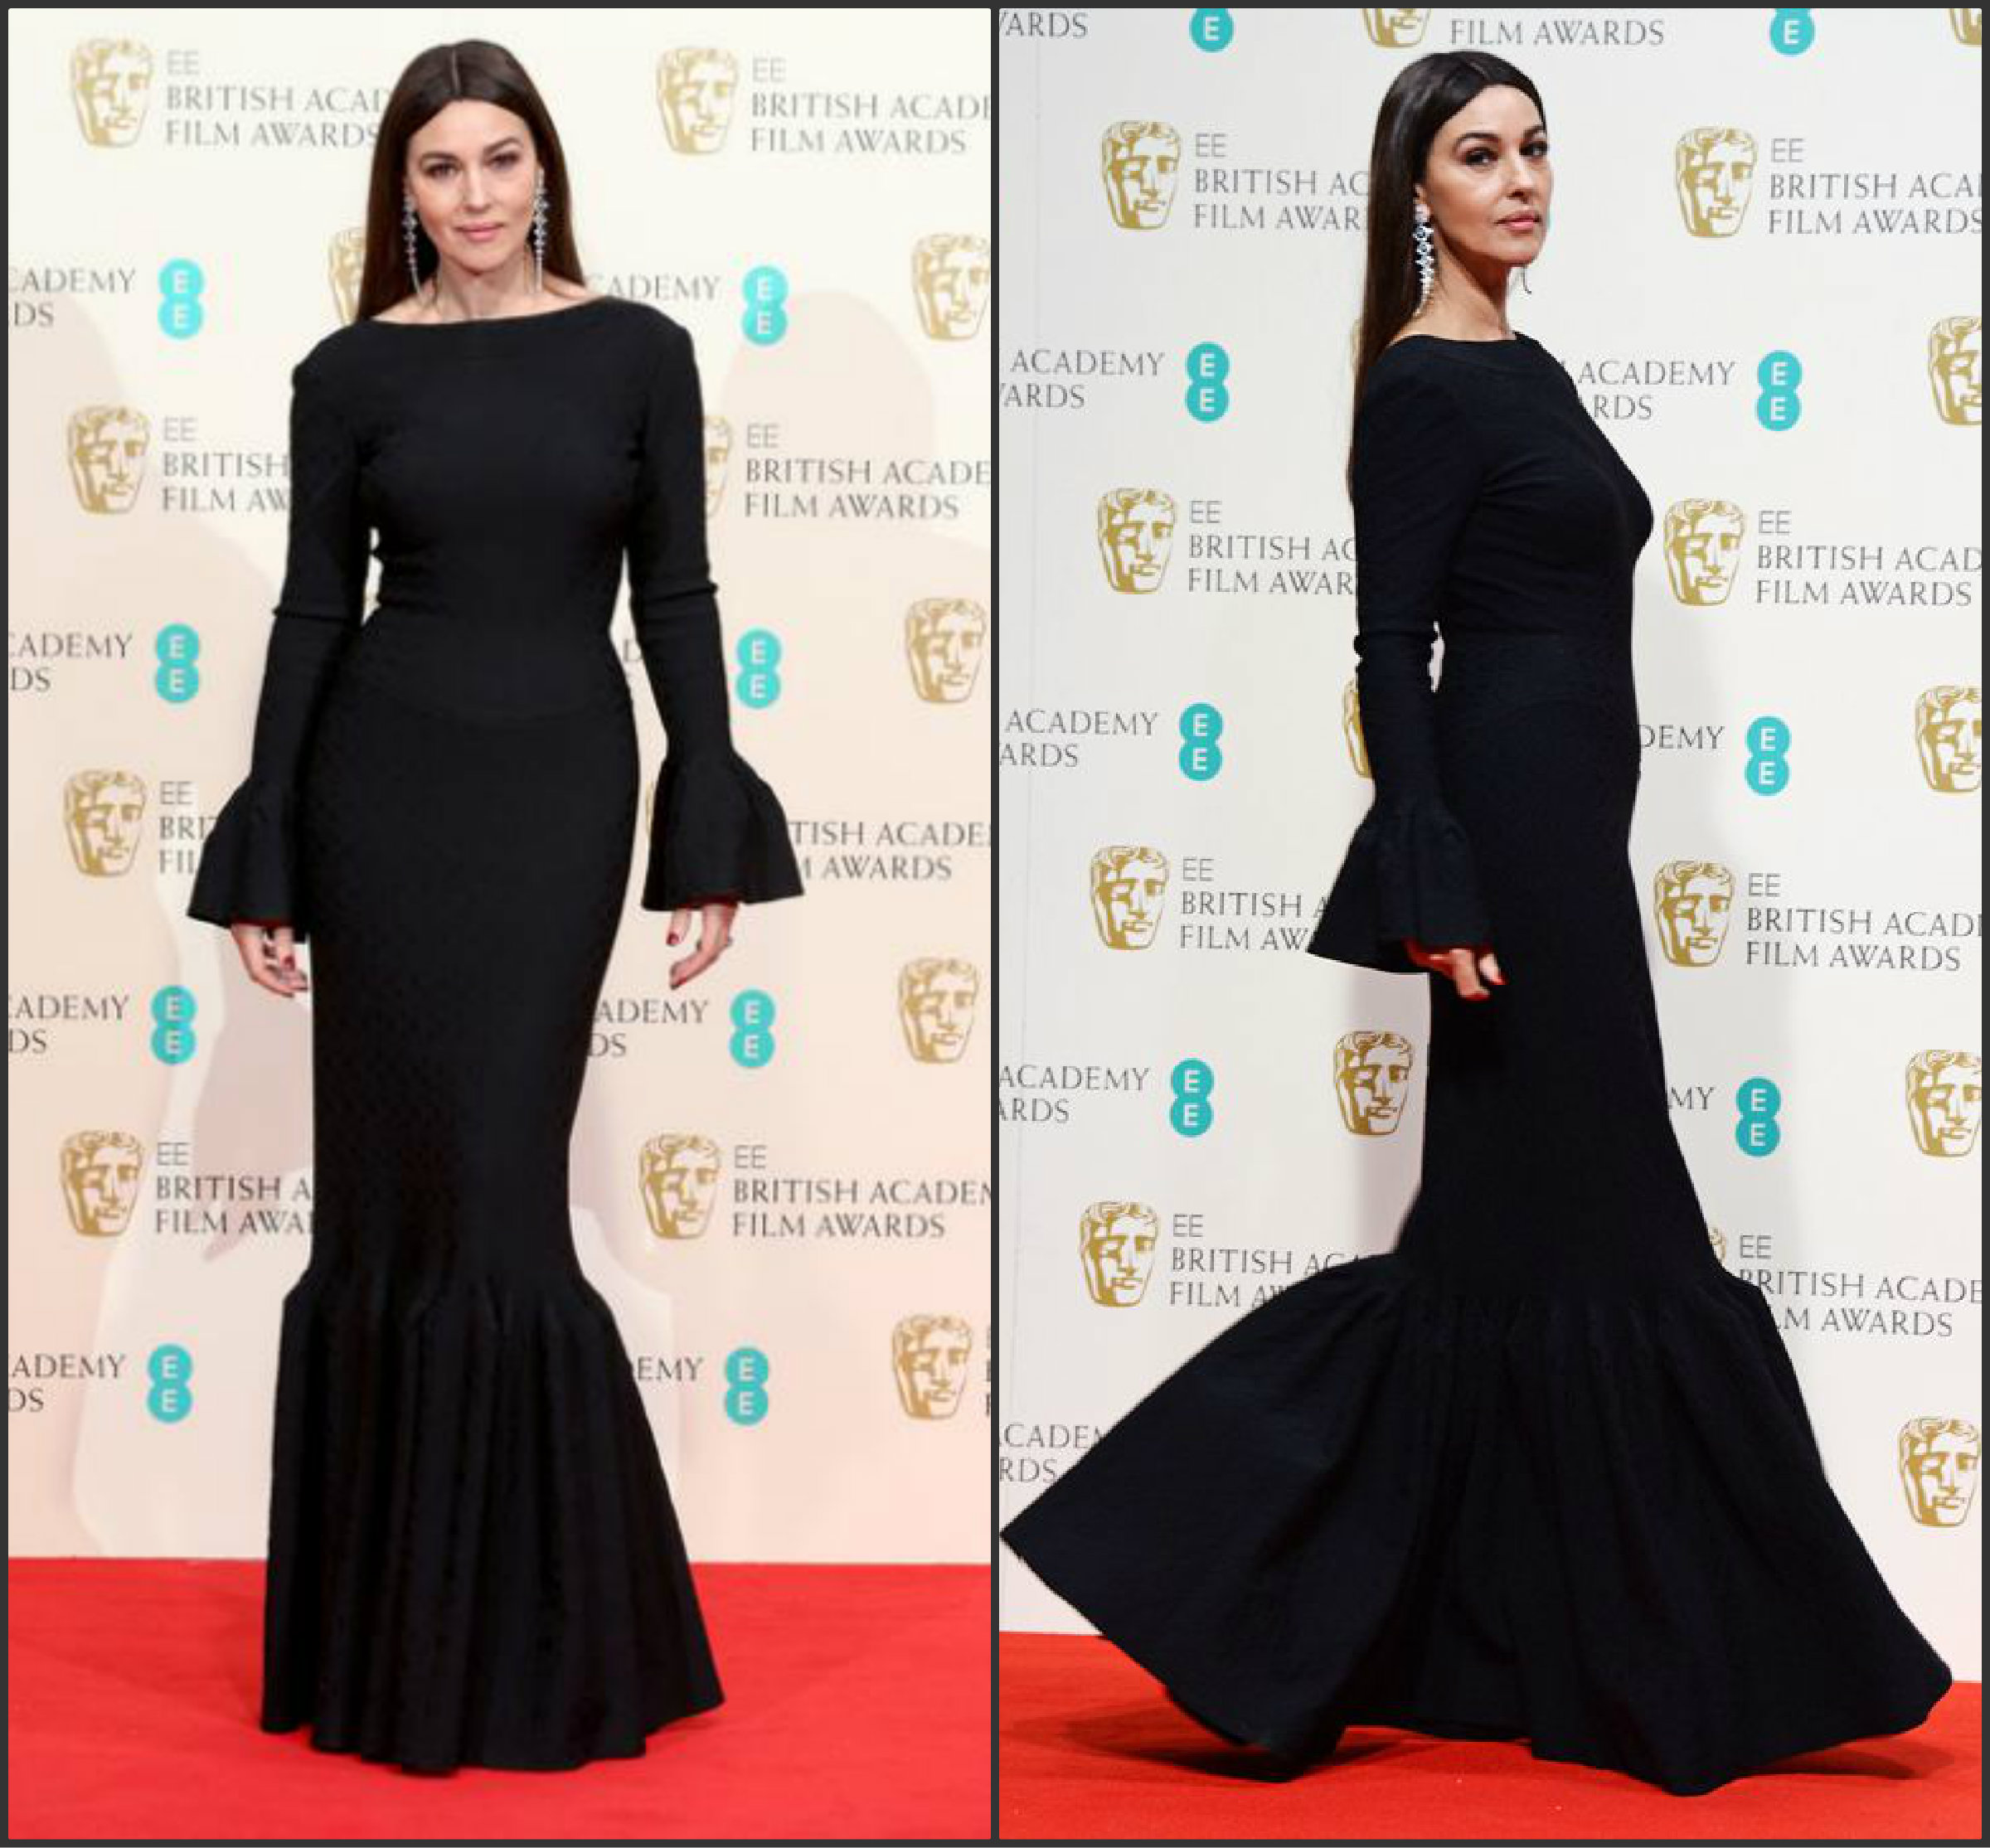 Monica-Bellucci-In-Alaia-at-the-2015-BAFTAs